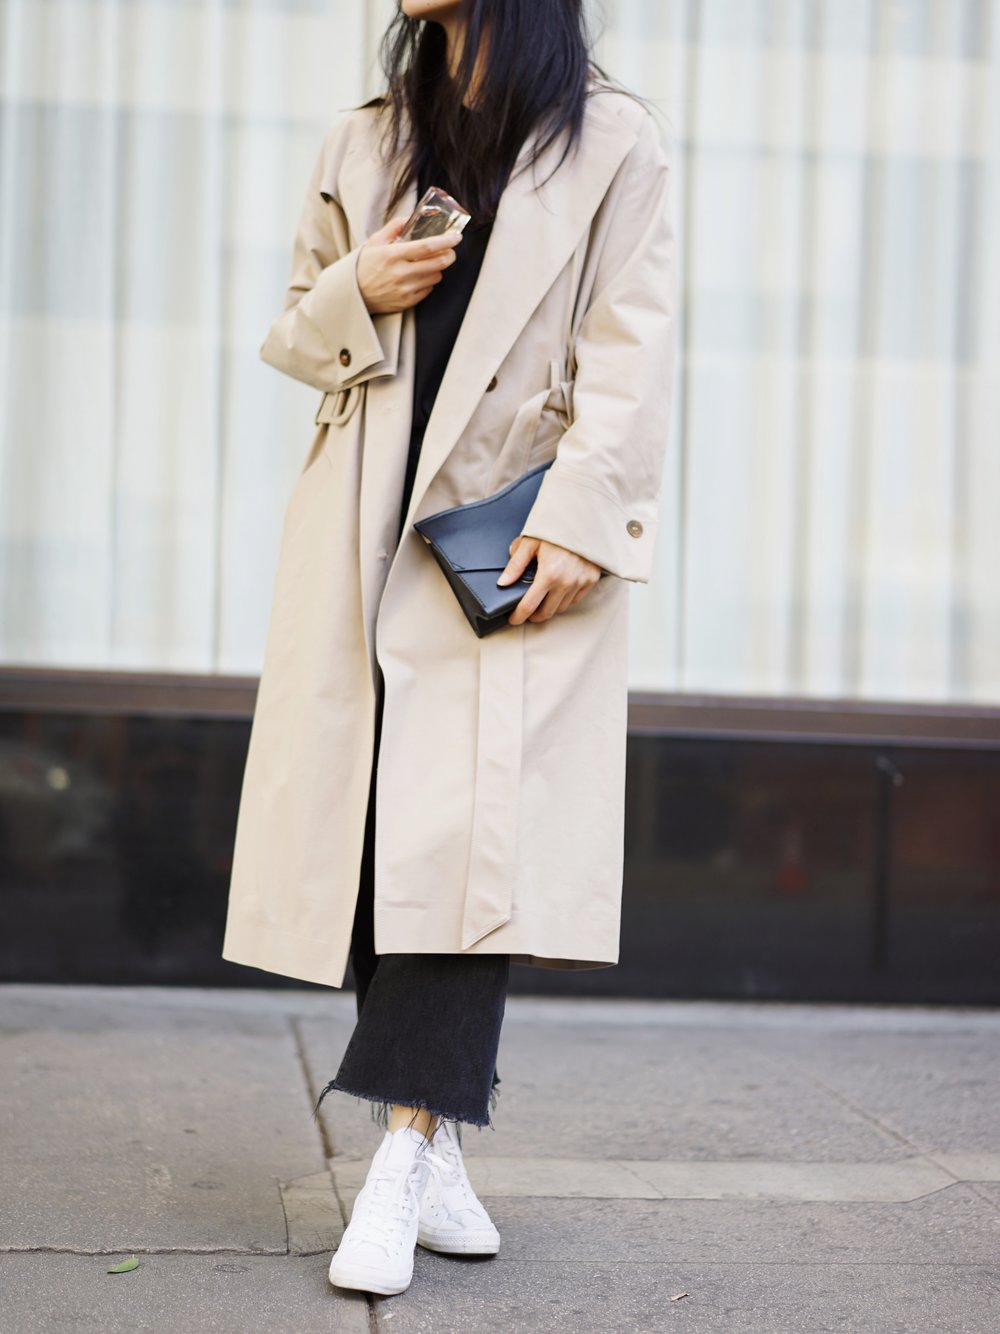 PROENZA SCHOULER   Clutch    /  NANUSHKA   Trench   / CITIZENS OF HUMANITY   Jeans   / CONVERSE   Sneakers